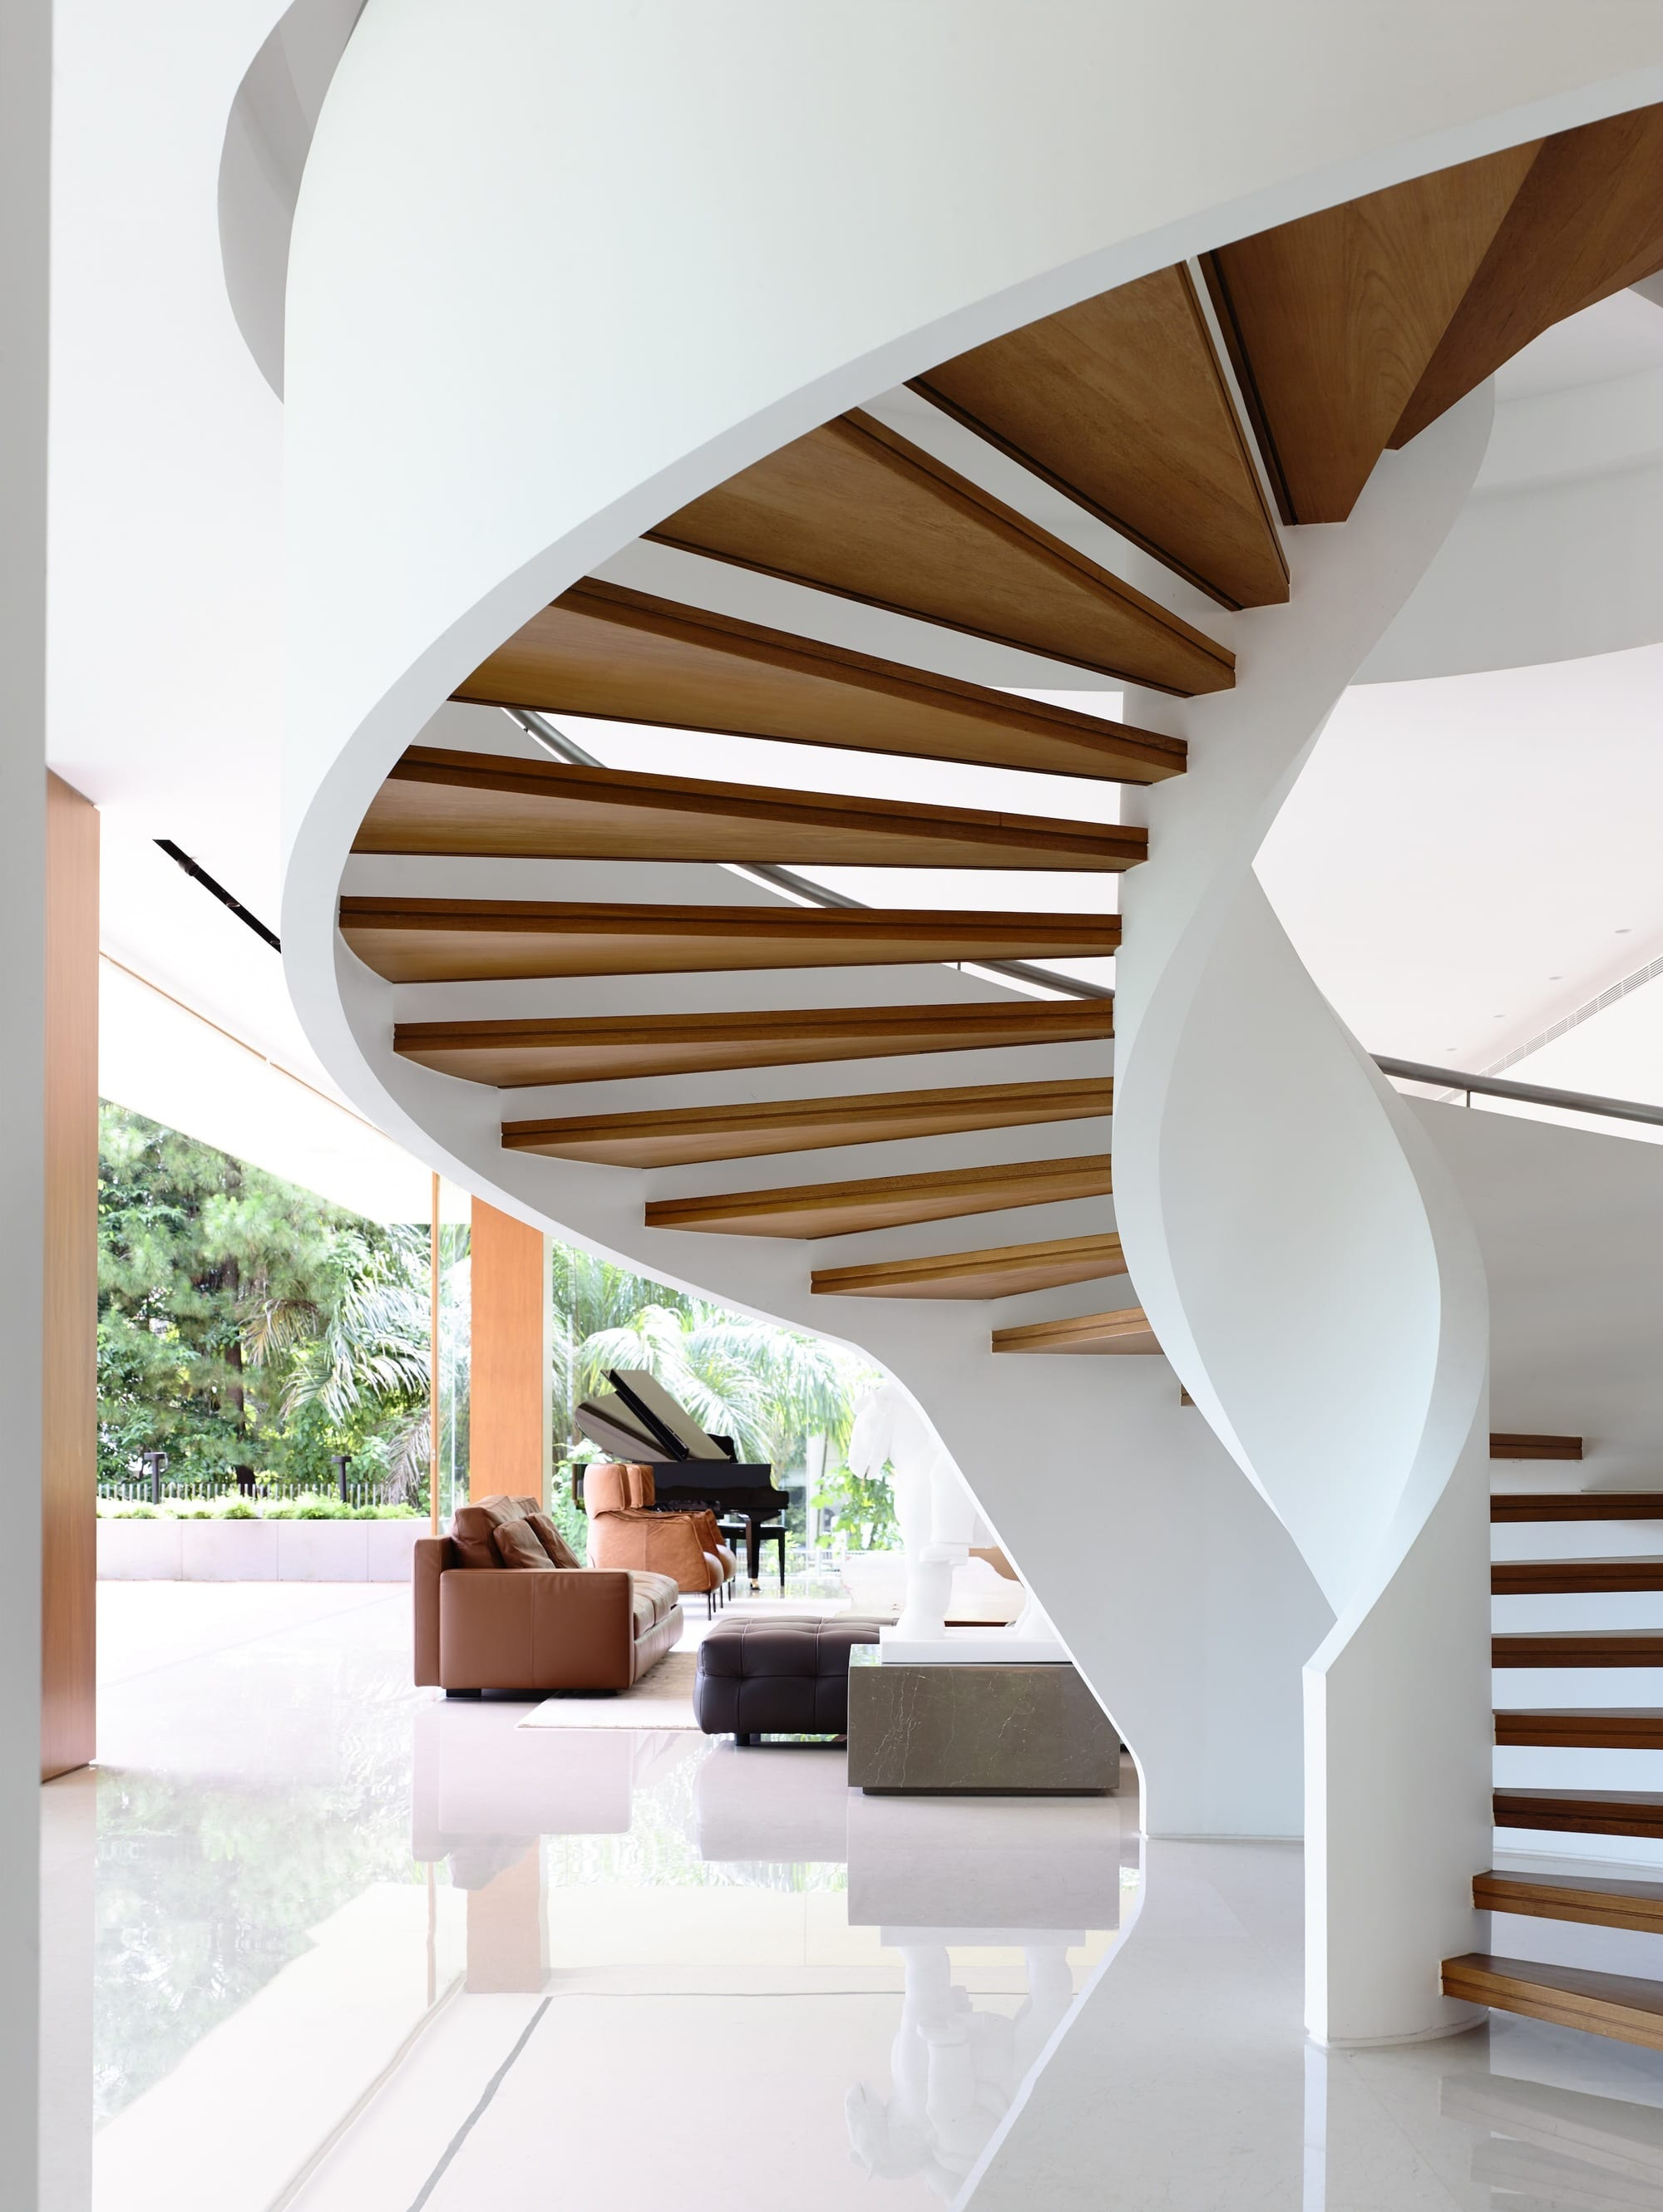 btp-house-by-ong-ong-modern-spiral-staircase